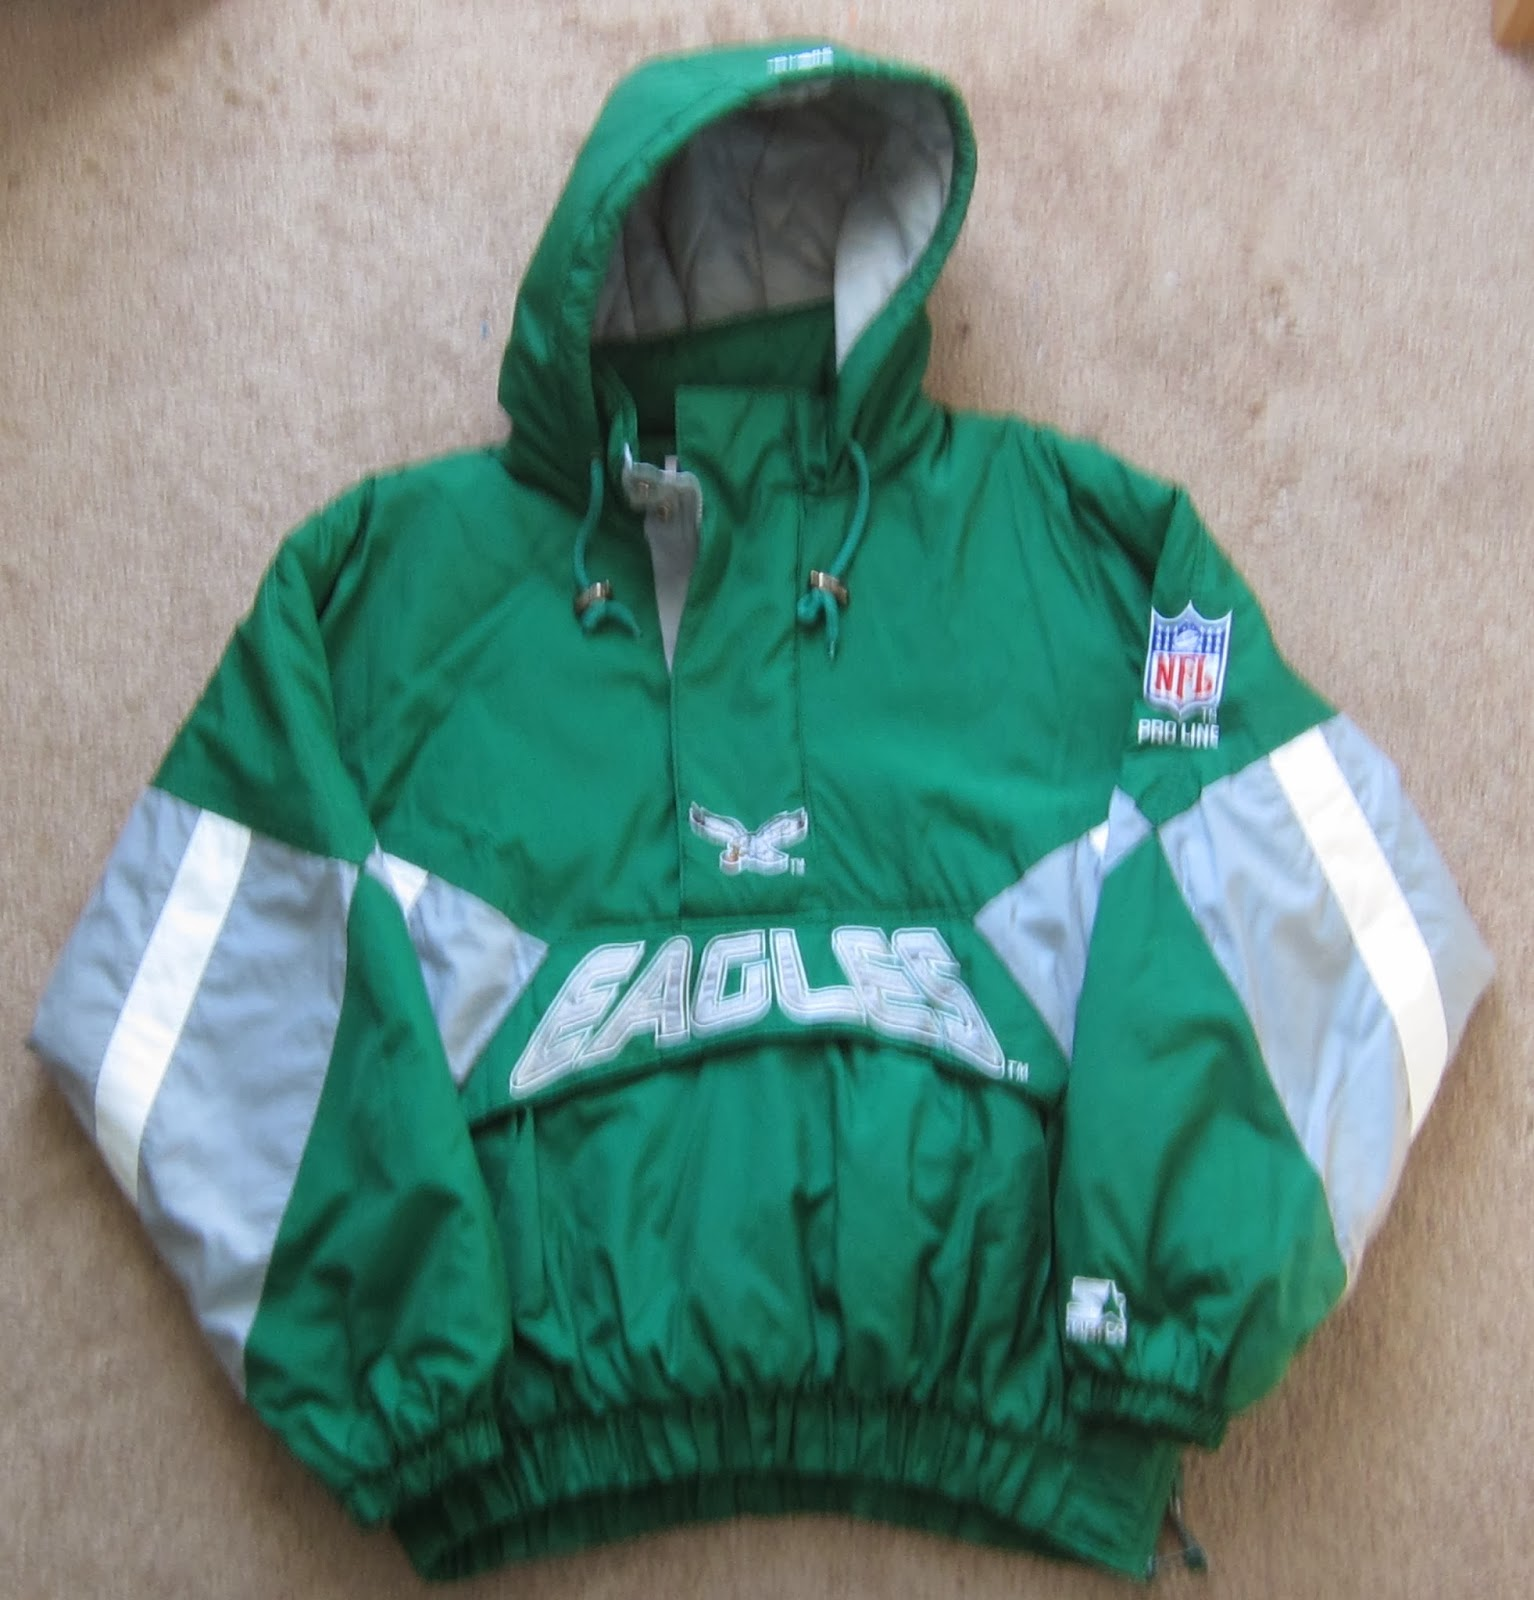 Eagles Starter Jacket Photo Album Best Fashion Trends